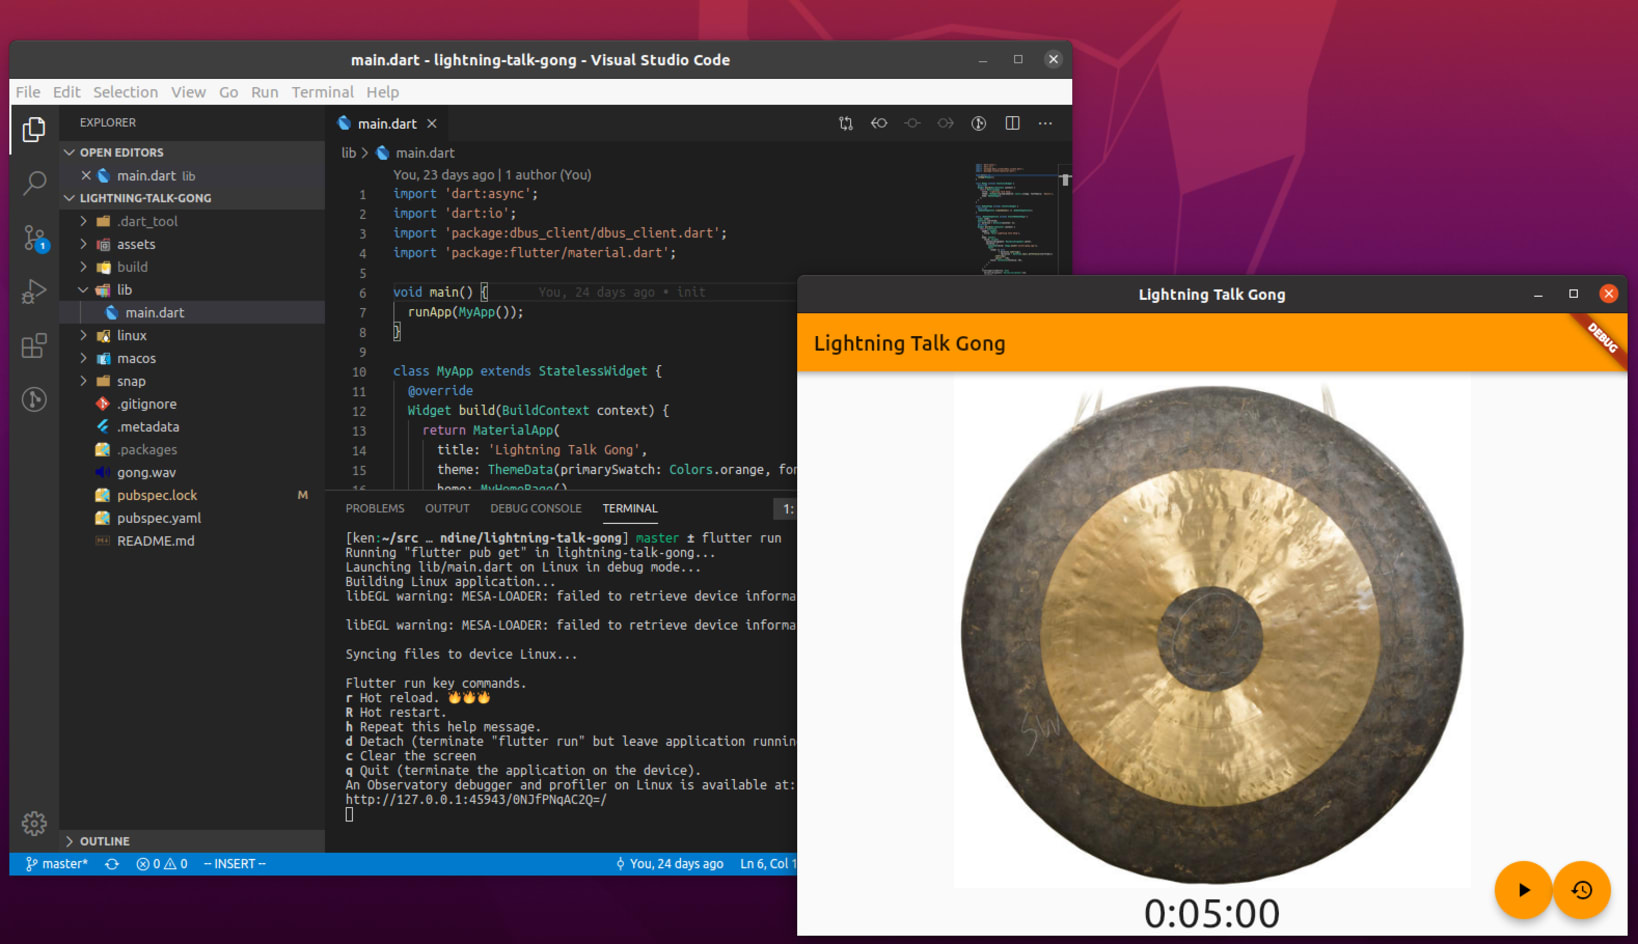 Canonical And Google Team Up To Bring Flutter Apps To The Linux Desktop 9to5linux